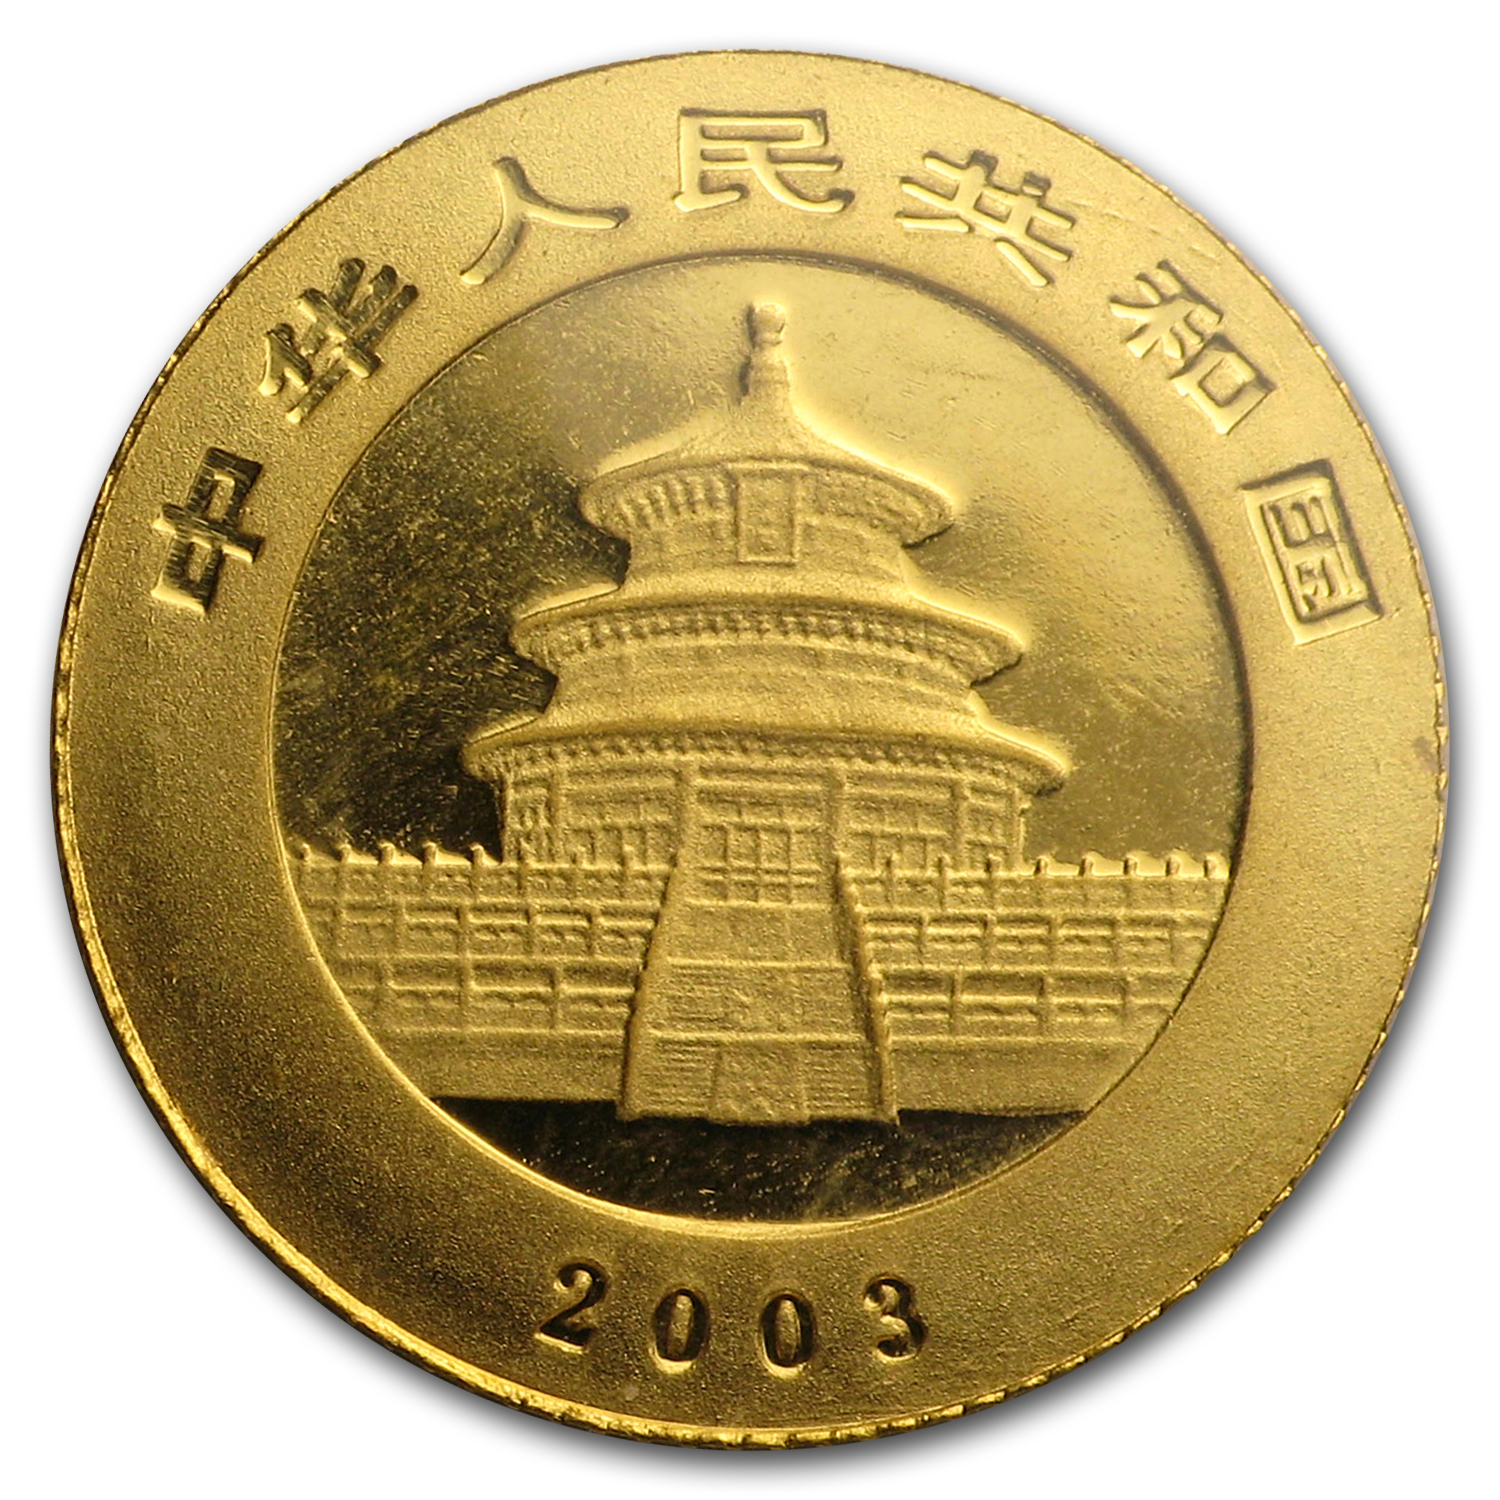 2003 1/20 oz Gold Chinese Panda BU (Sealed)